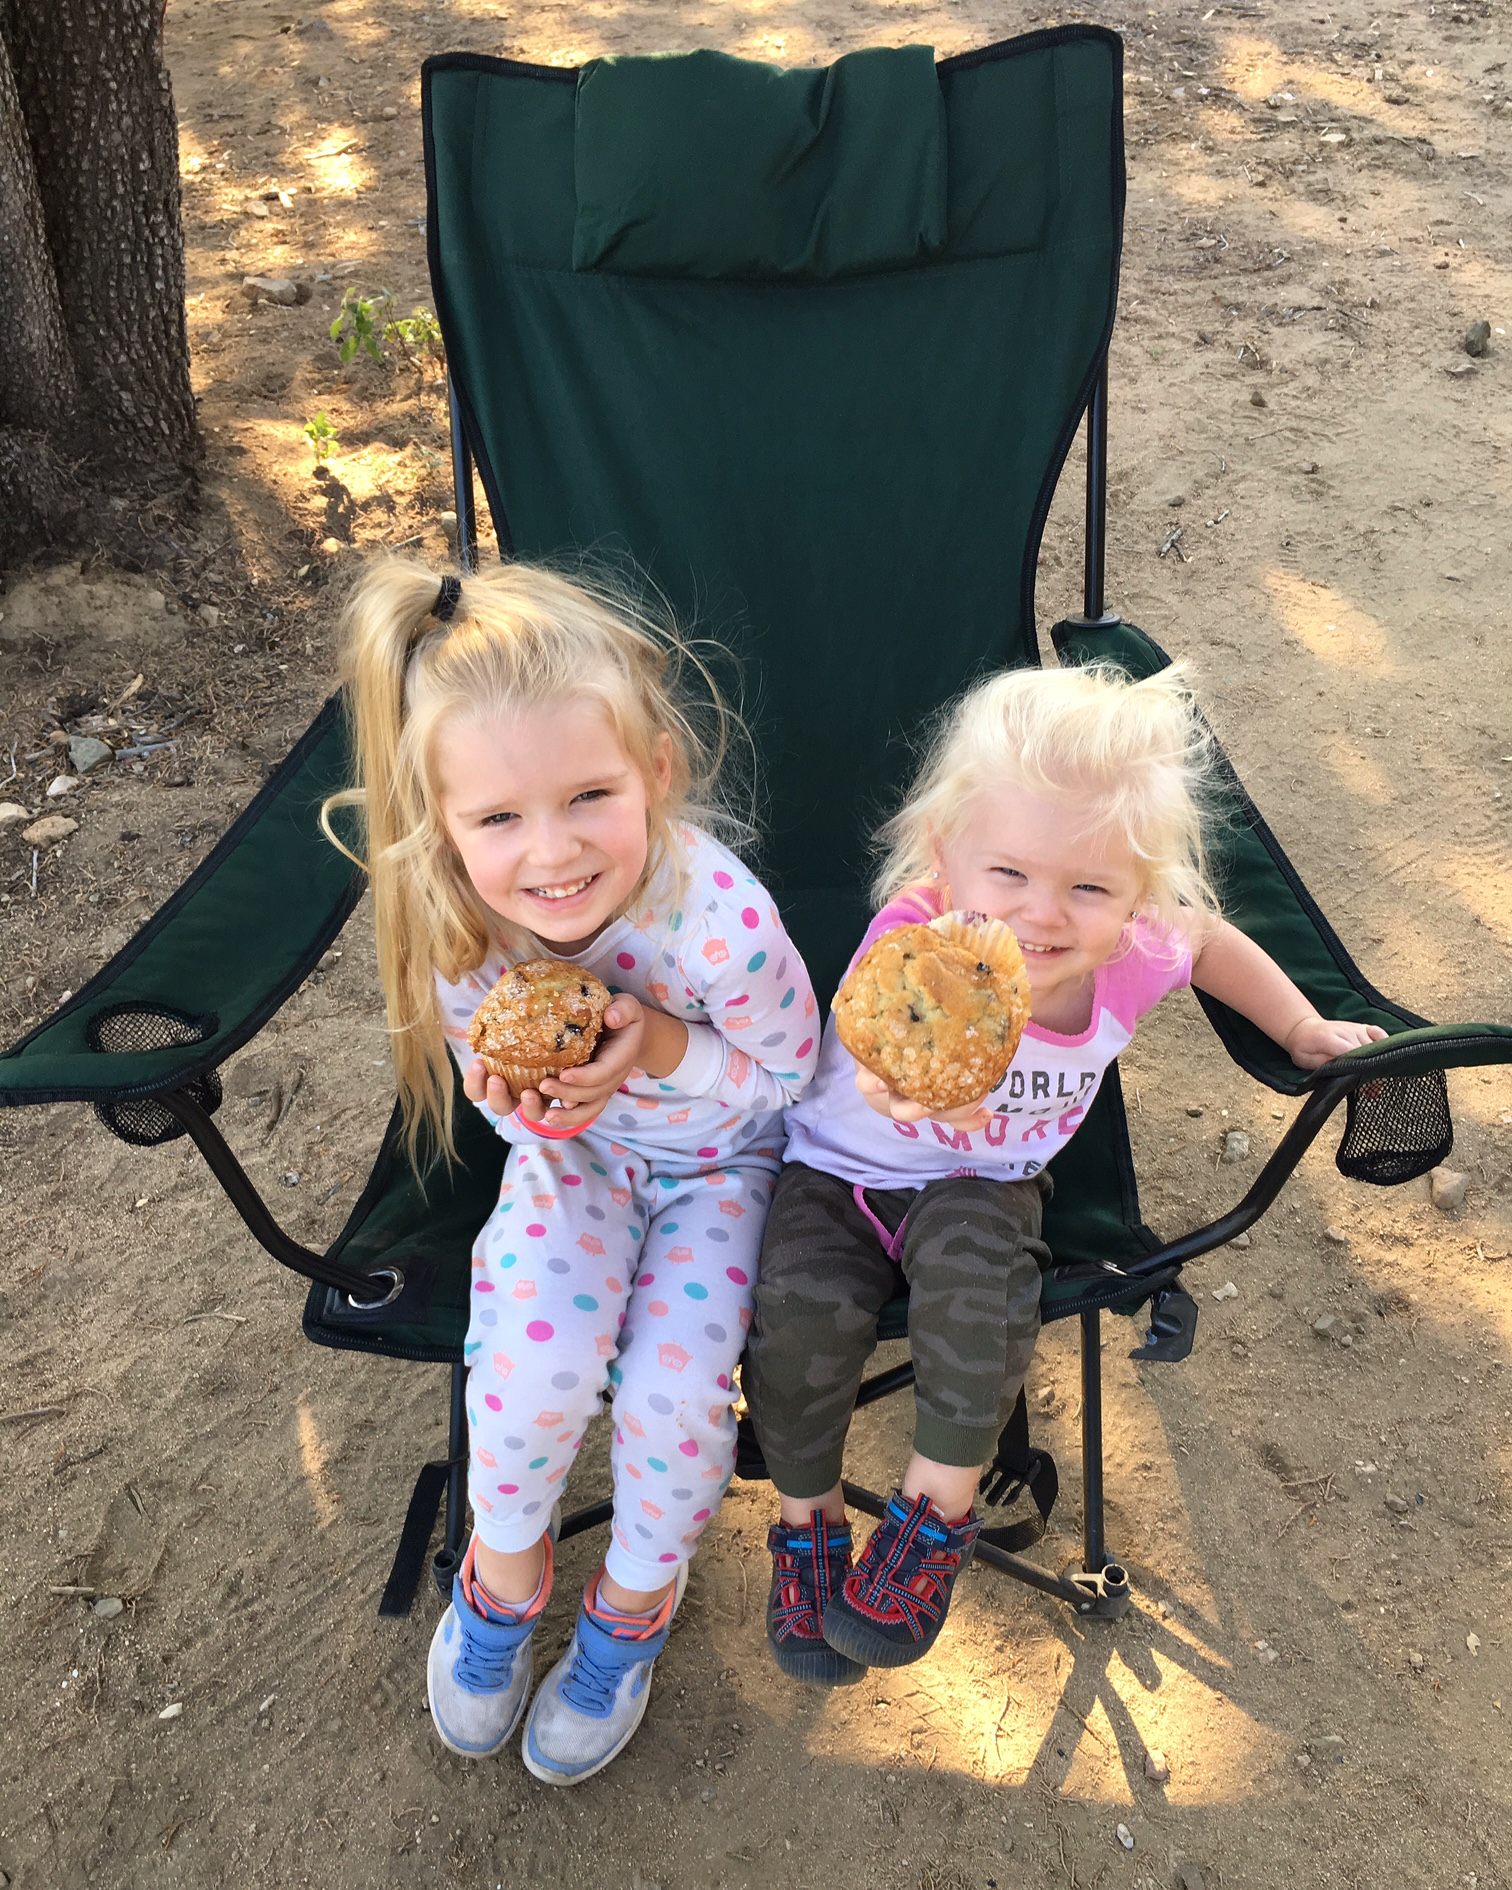 Camping With Kids - Tips & Tricks To Make It Enjoyable For All